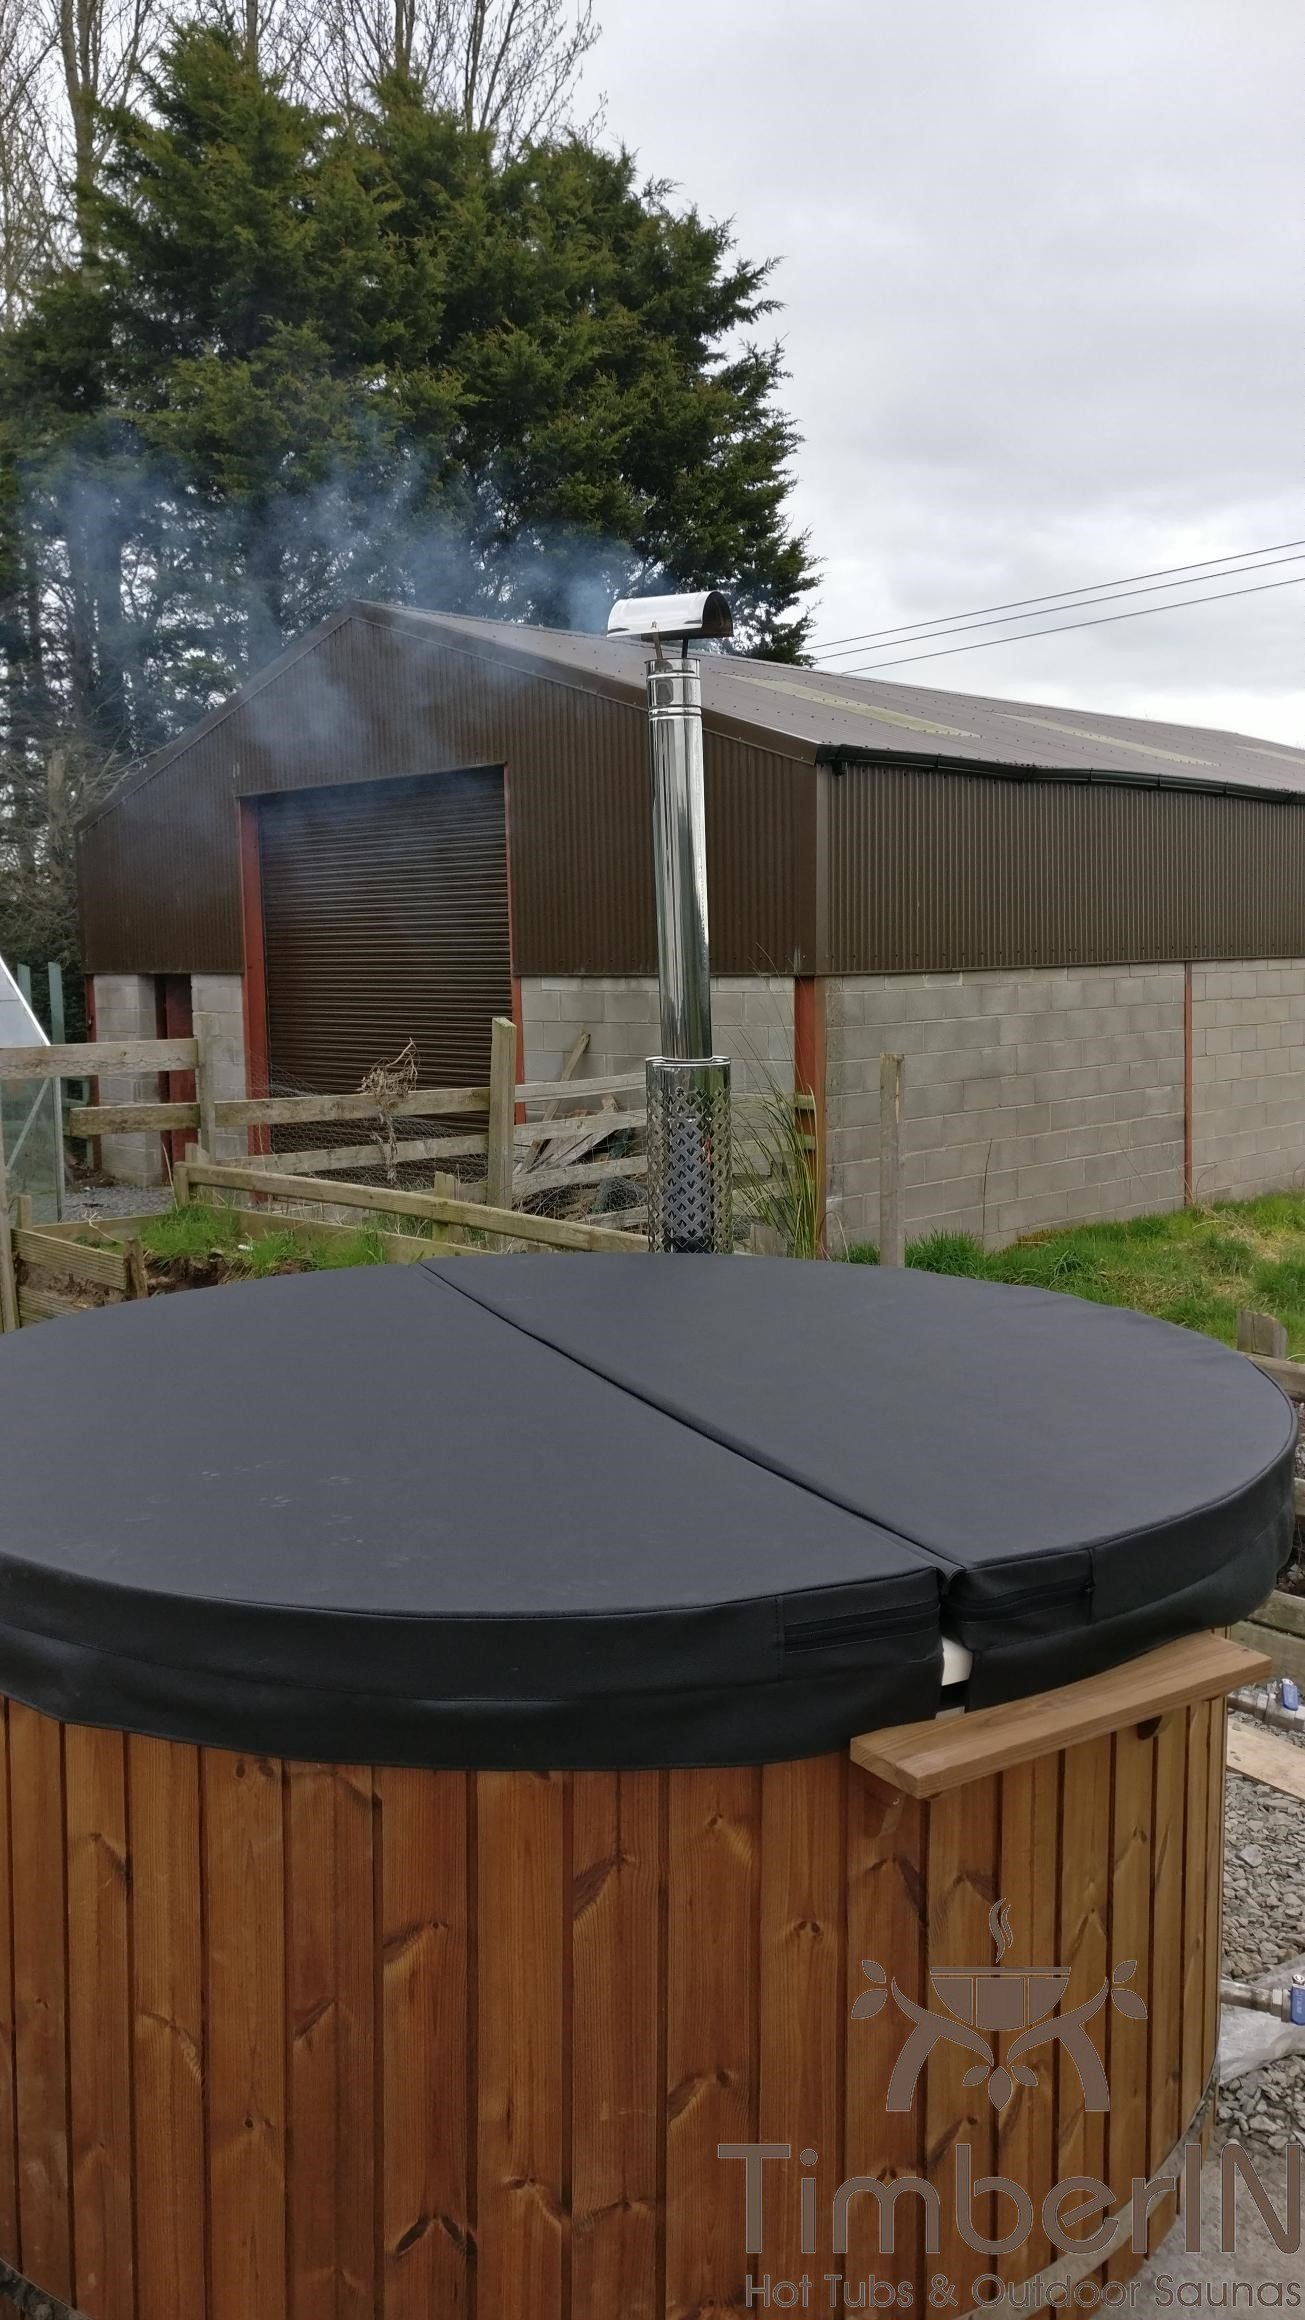 Wood burning heated hot tubs with jets – TimberIN Rojal Geoff Armagh United Kingdom 1